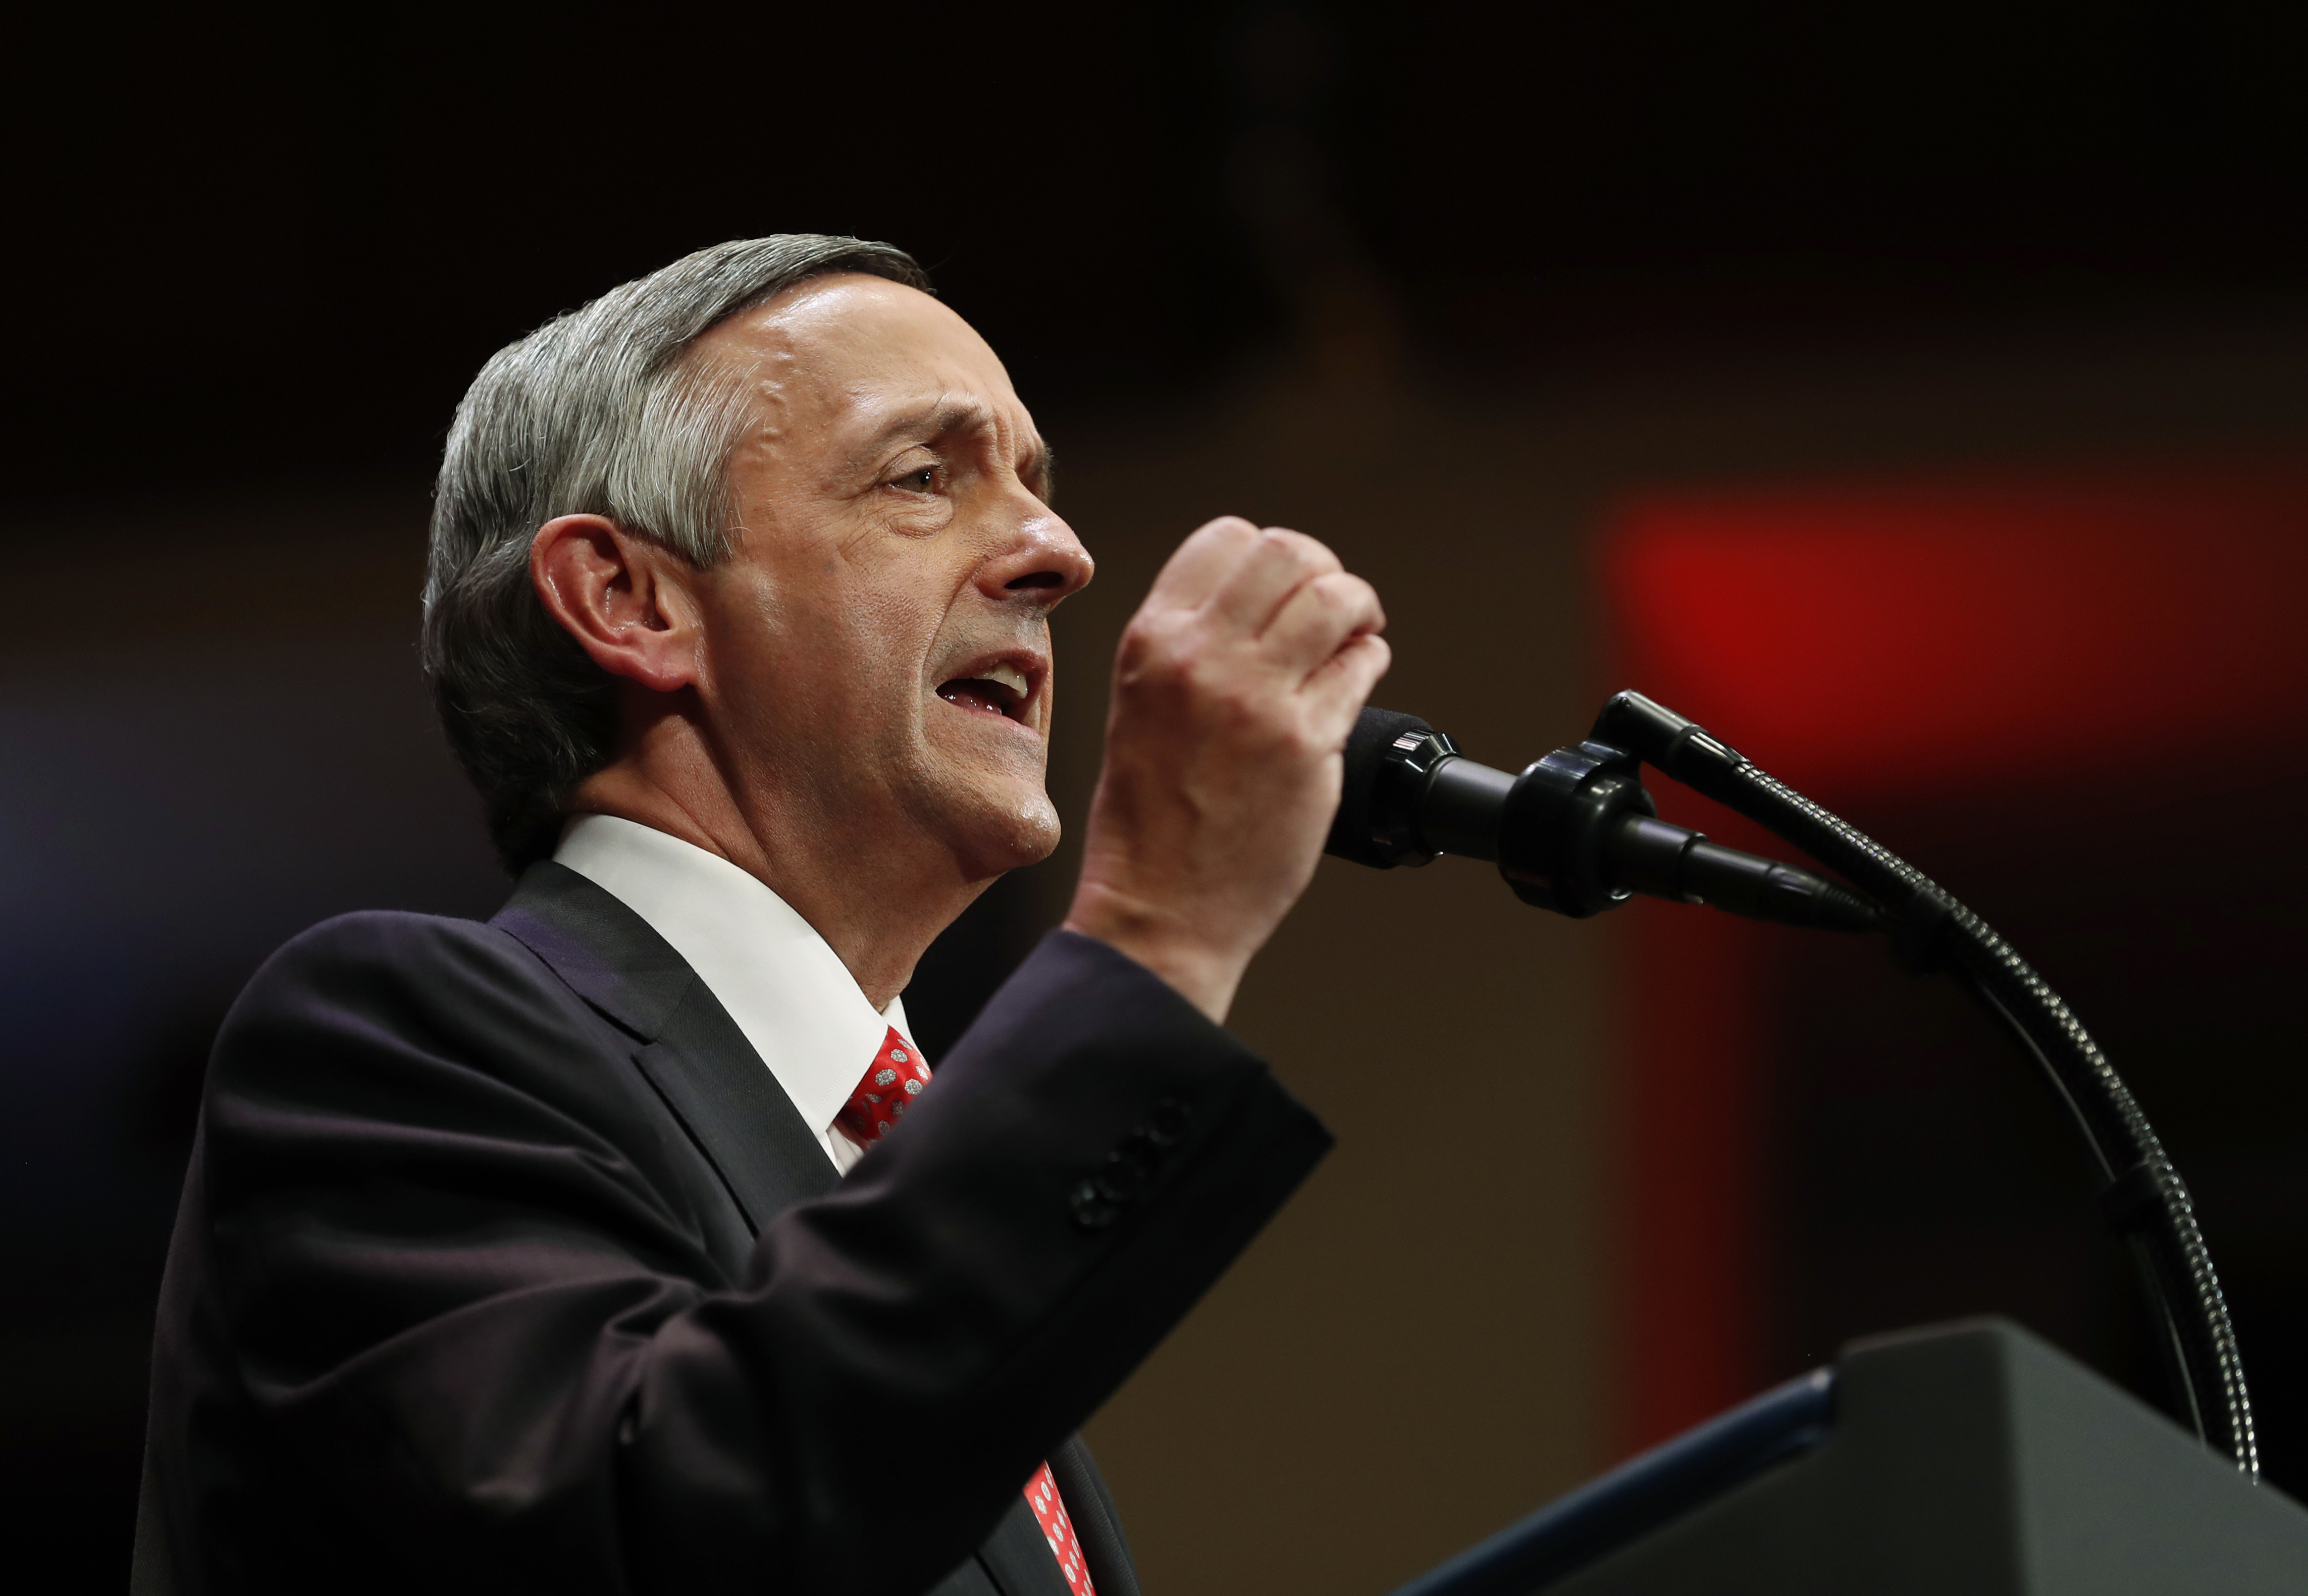 FILE - In this July 1, 2017, file photo, pastor Robert Jeffress, of the First Baptist Church in Dallas, speaks as he introduces President Donald Trump during the Celebrate Freedom event at the Kennedy Center for the Performing Arts in Washington. In a tweet Sunday, May 13, 2018, Senate candidate Mitt Romney of Utah says the prominent Baptist minister, Jeffress, shouldn't be giving the prayer that opens the U.S. Embassy in Jerusalem because he's a